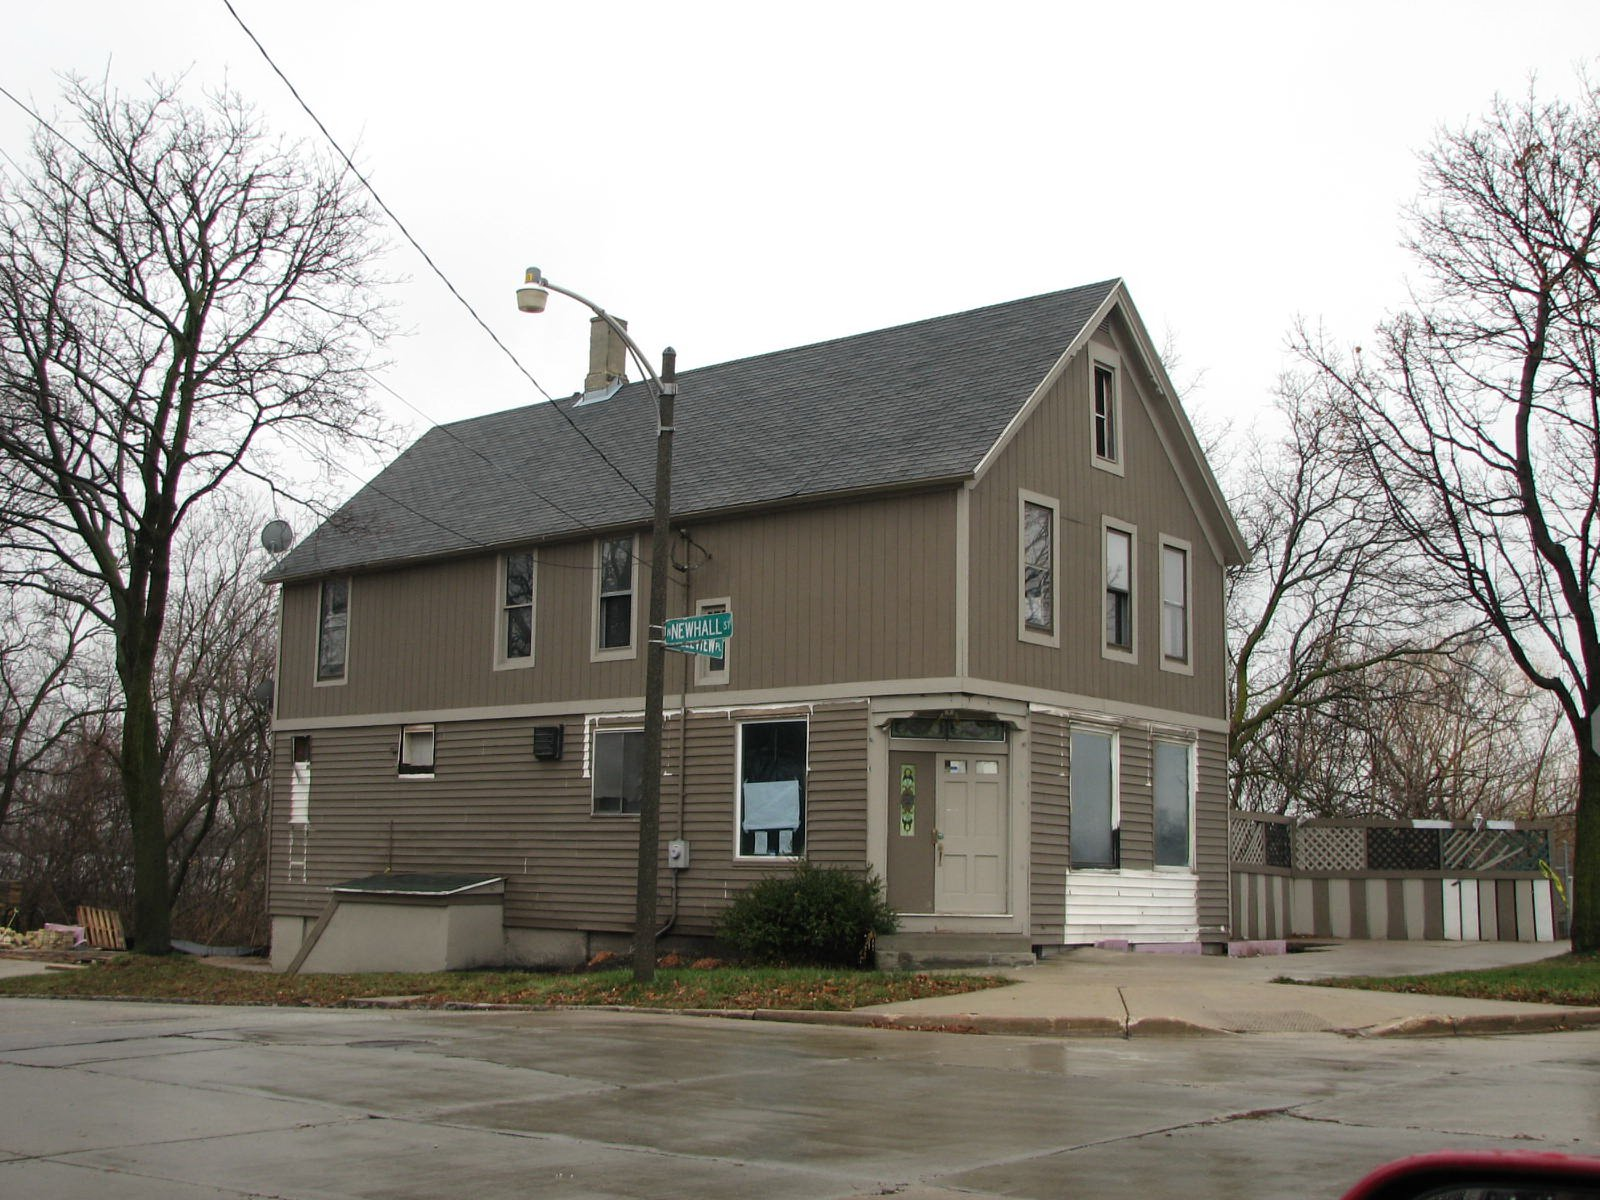 The building prior to its conversion into the BikePath Building.